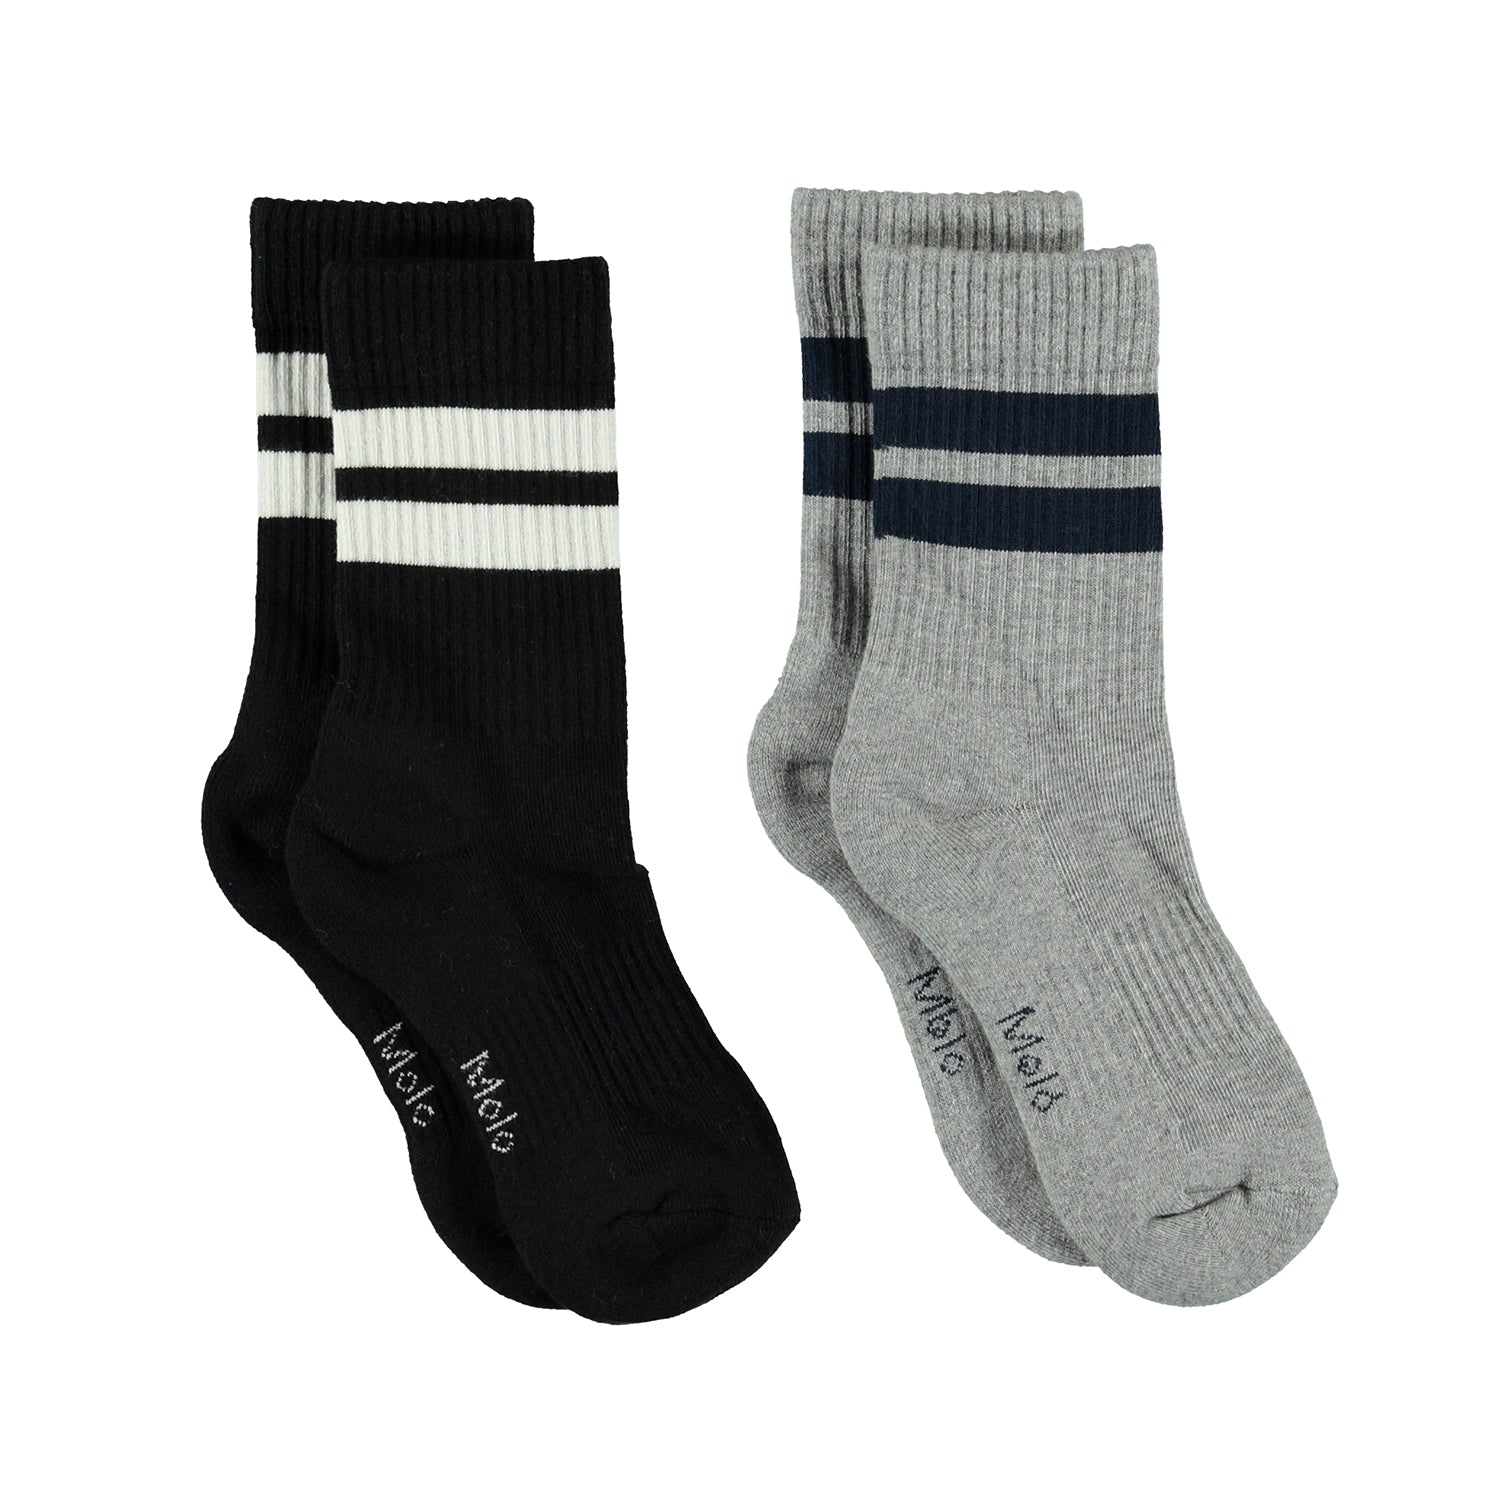 molo norman socks